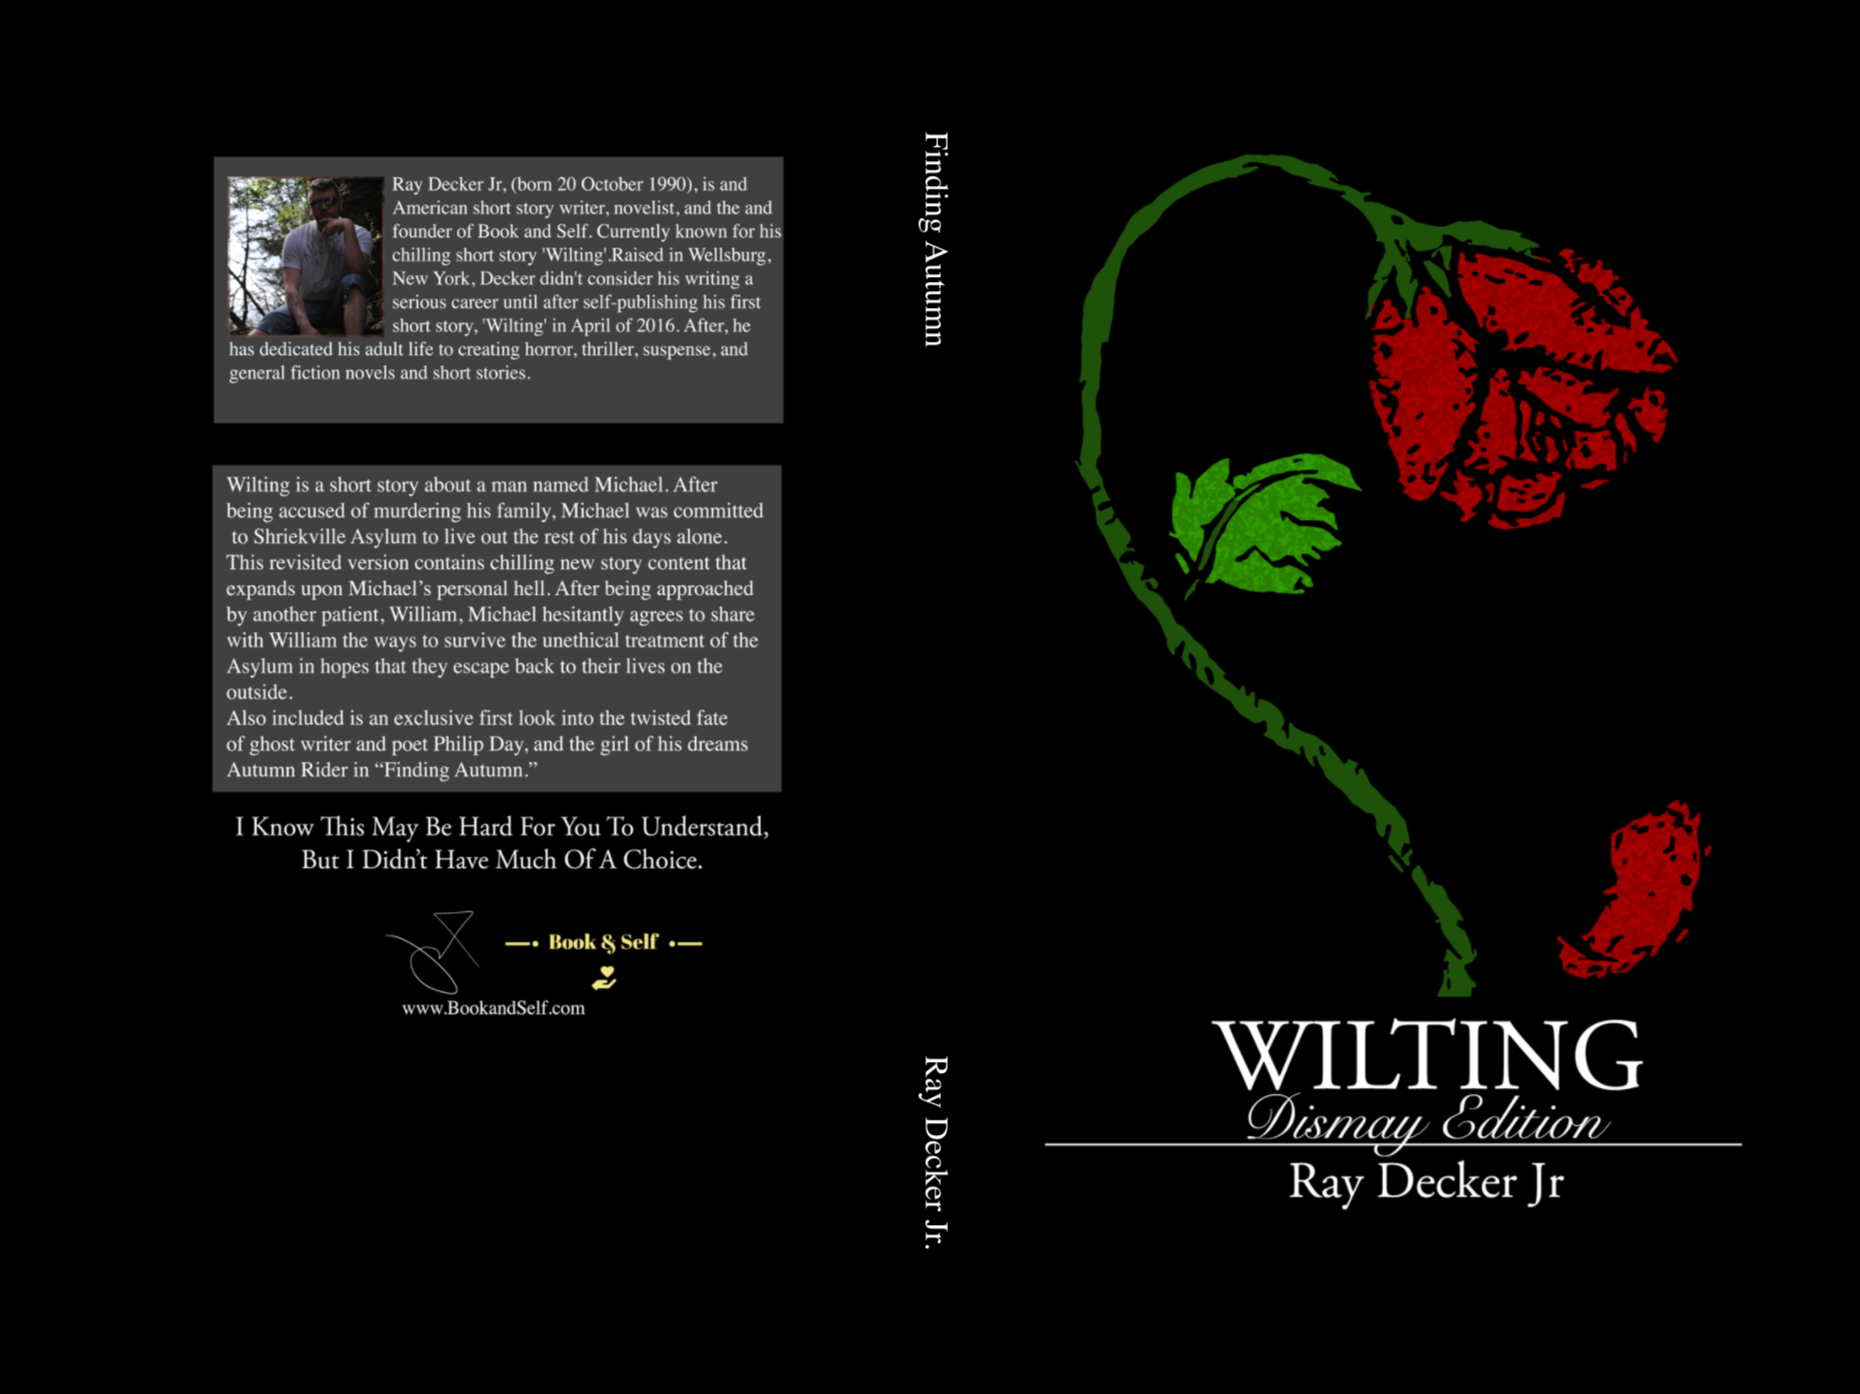 Wilting: Dismay Edition By Ray Decker Jr.